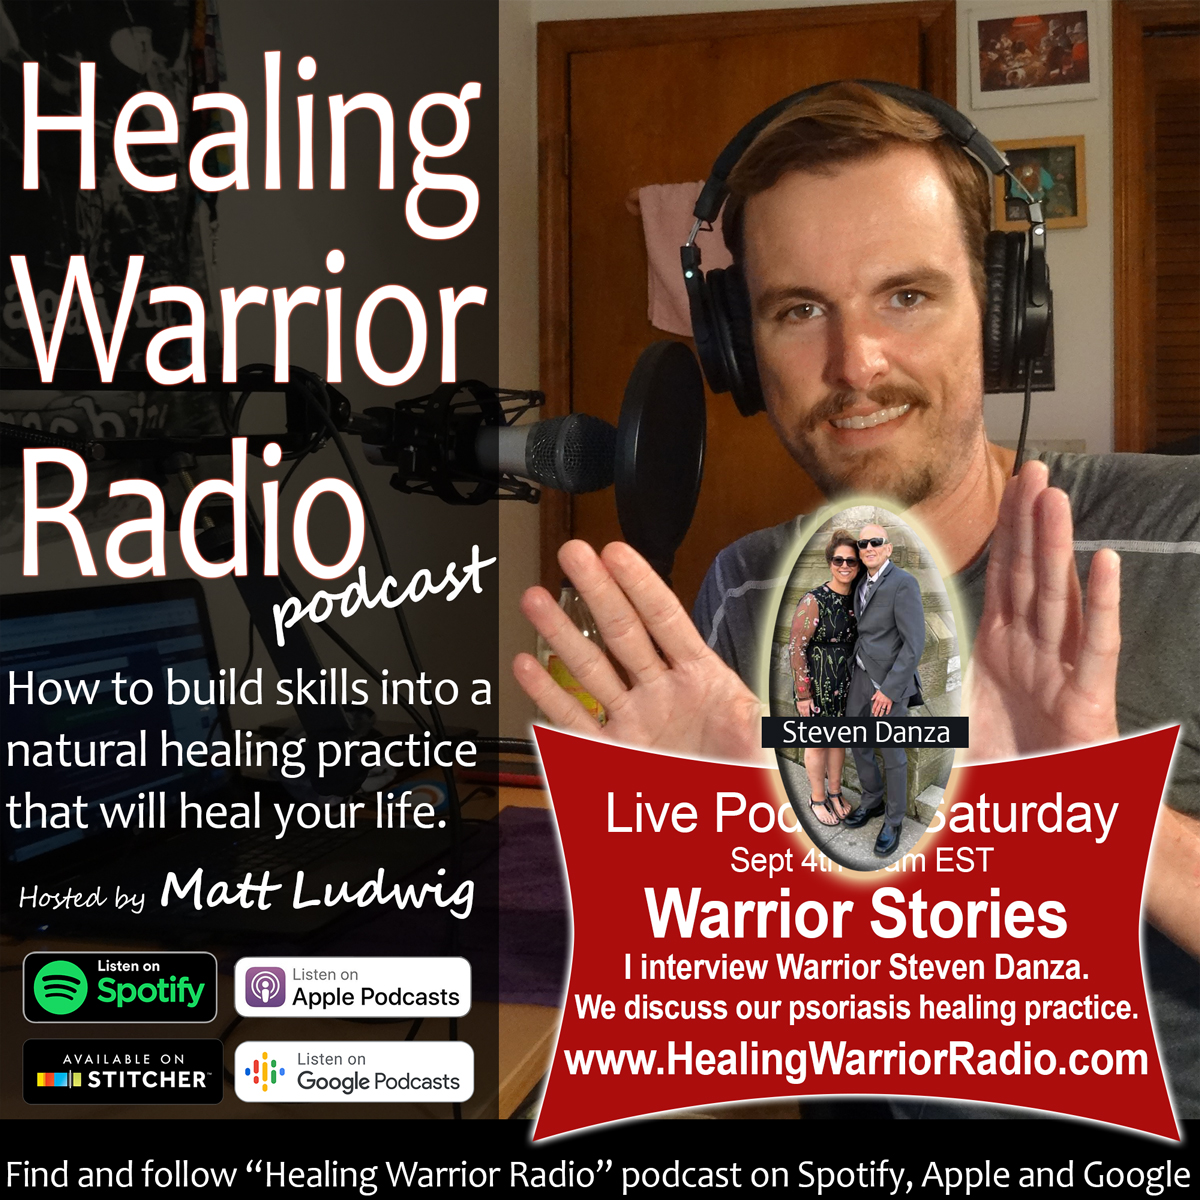 Warrior Story 01 with Steven Danza – We Talk Healing Psoriasis Diet, Celery Juicing, Lemon Water, Yoga, Medical Medium and How to Heal at Home